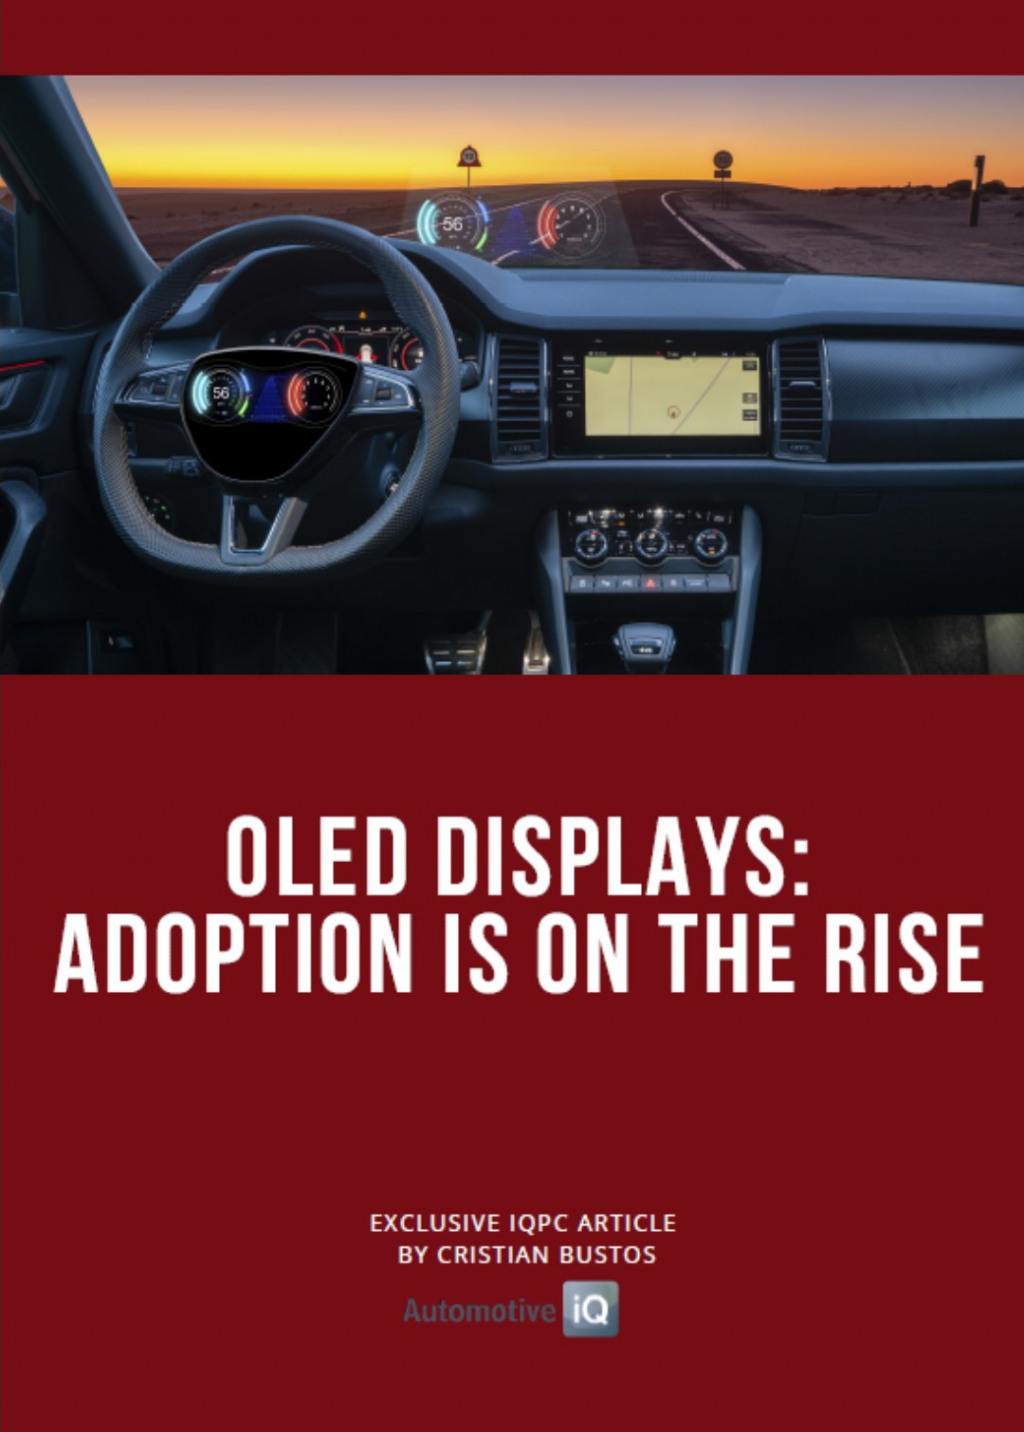 Report on OLED Displays: Adoption is on the Rise